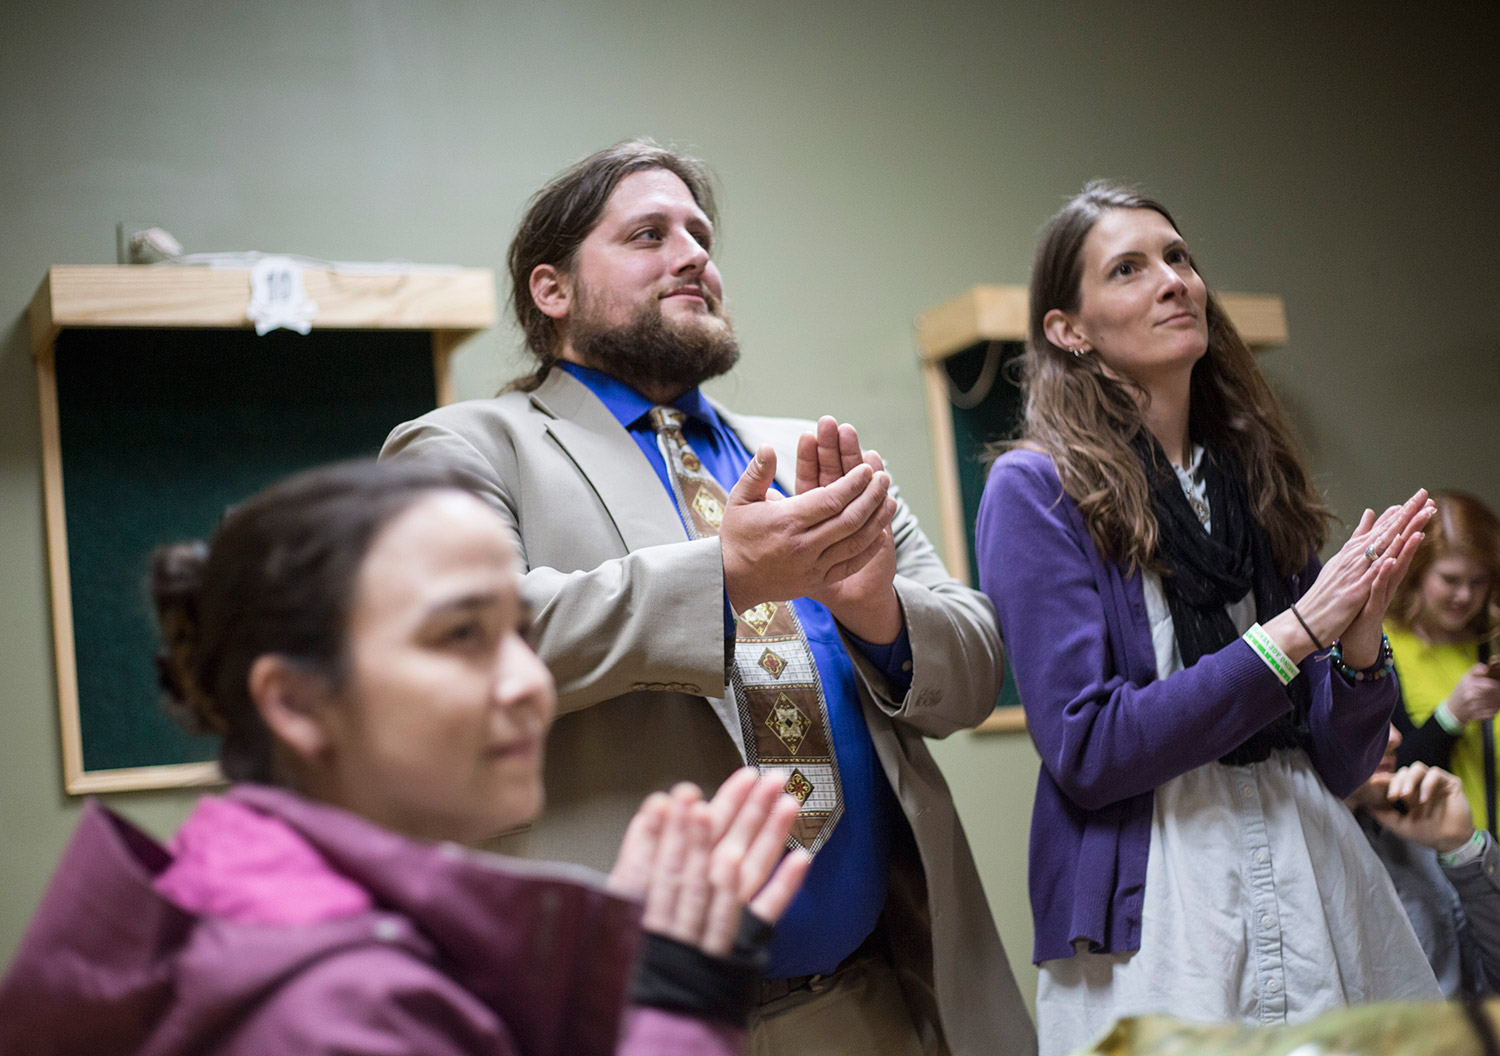 """Sherri Bukovskey of Gray, left, Paul McCarrier of Knox and his girlfriend, Carole Quigley of Monroe, applaud a speaker at Monday night's """"End of Cannabis Prohibition Party"""" at The Gold Room in Portland. Police told the event's organizers Monday afternoon that trading and consuming marijuana at the event would be a violation of the law because The Gold Room is a public space."""